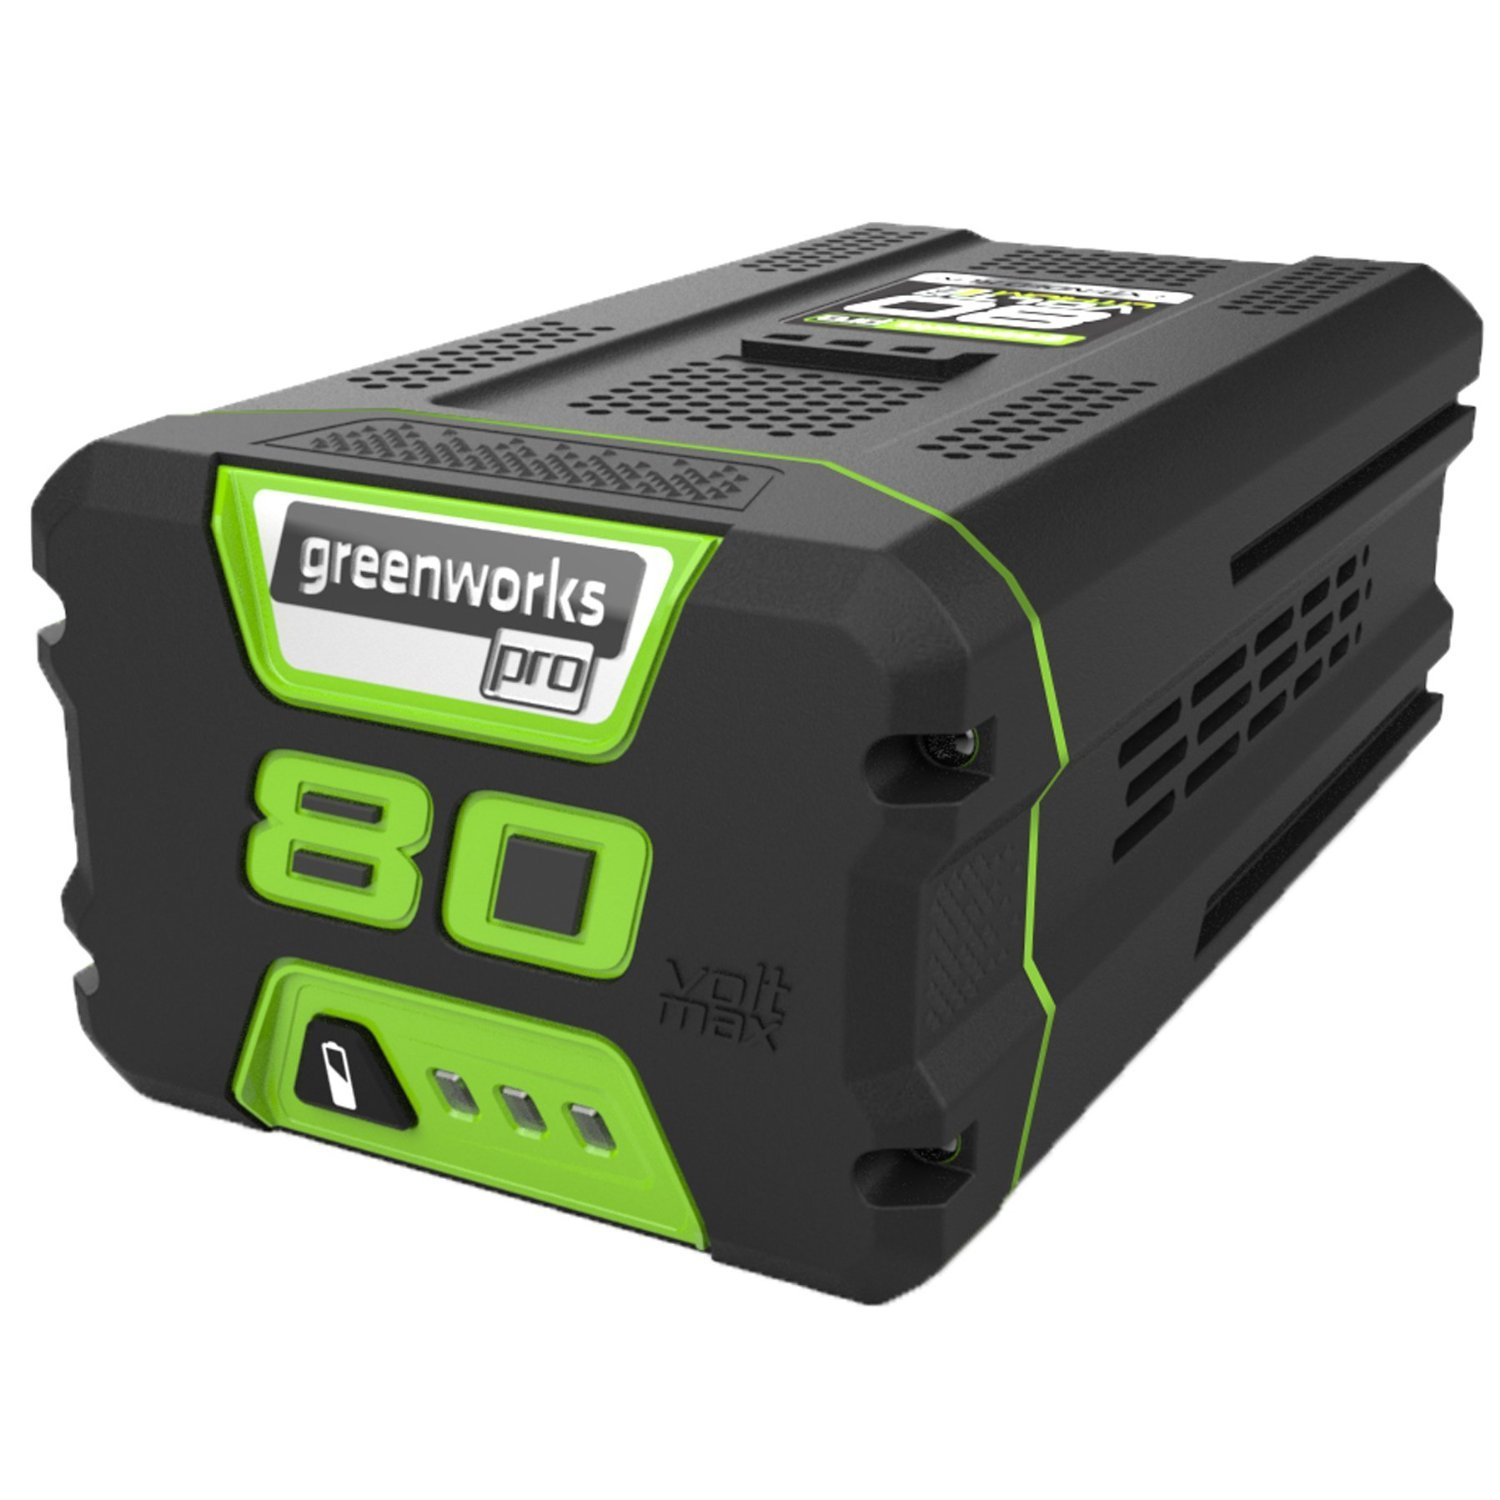 Greenworks PRO 80V 4.0 AH Lithium Ion Battery GBA80400